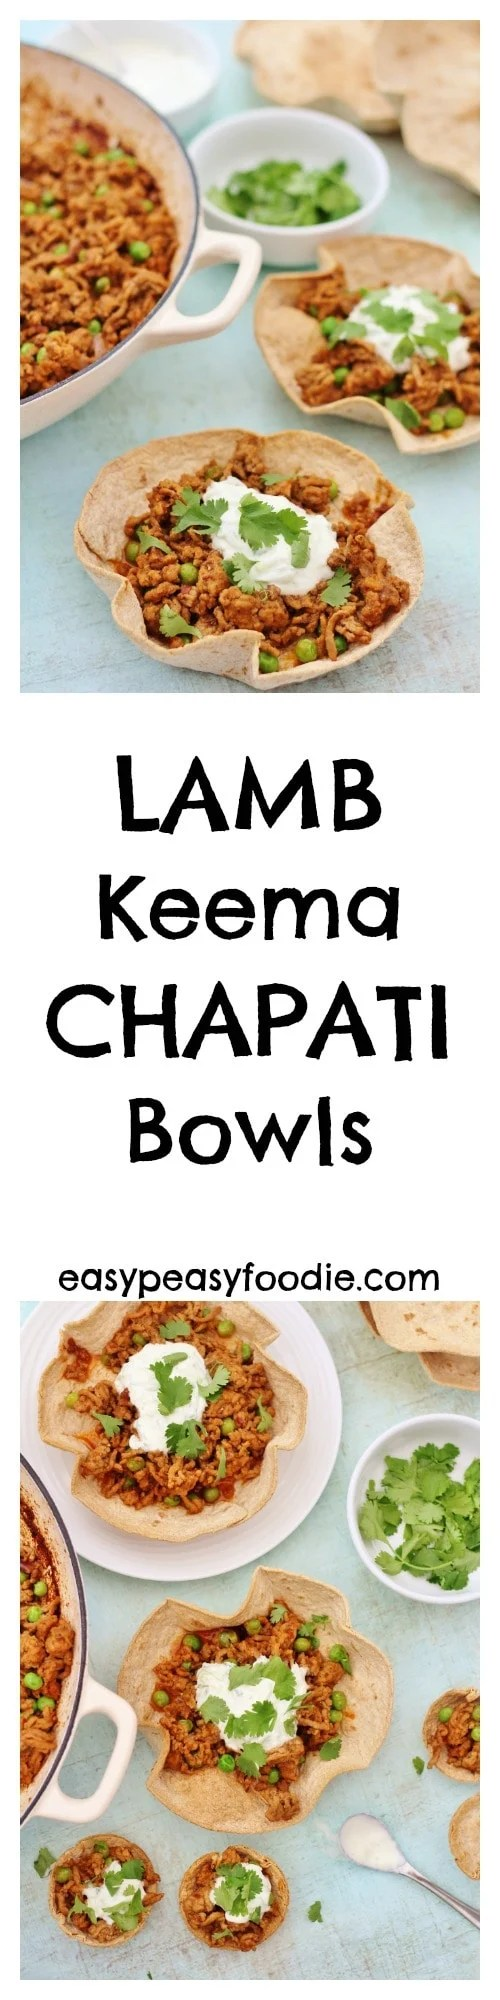 Perfect for party nibbles, a dinner party starter or even a quick midweek meal, these Lamb Keema Chapati Bowls are a great way to inject a little fun into your cooking and celebrate National Curry Week! #lamb #keema #chapati #bowls #mince #raita #starter #partyfood #nationalcurryweek